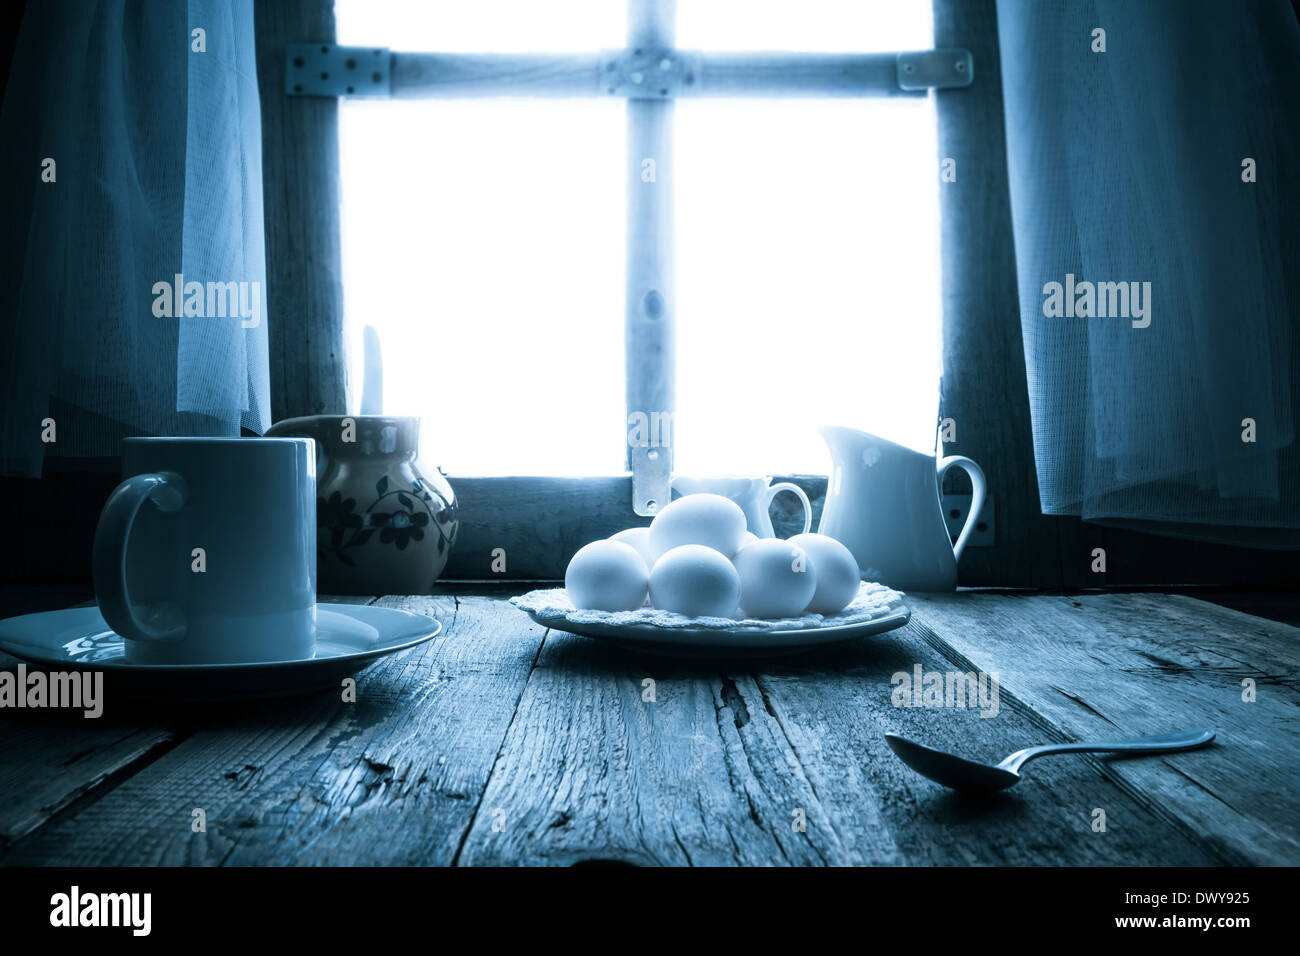 Old kitchen table in a rural cottage in the morning - Stock Image